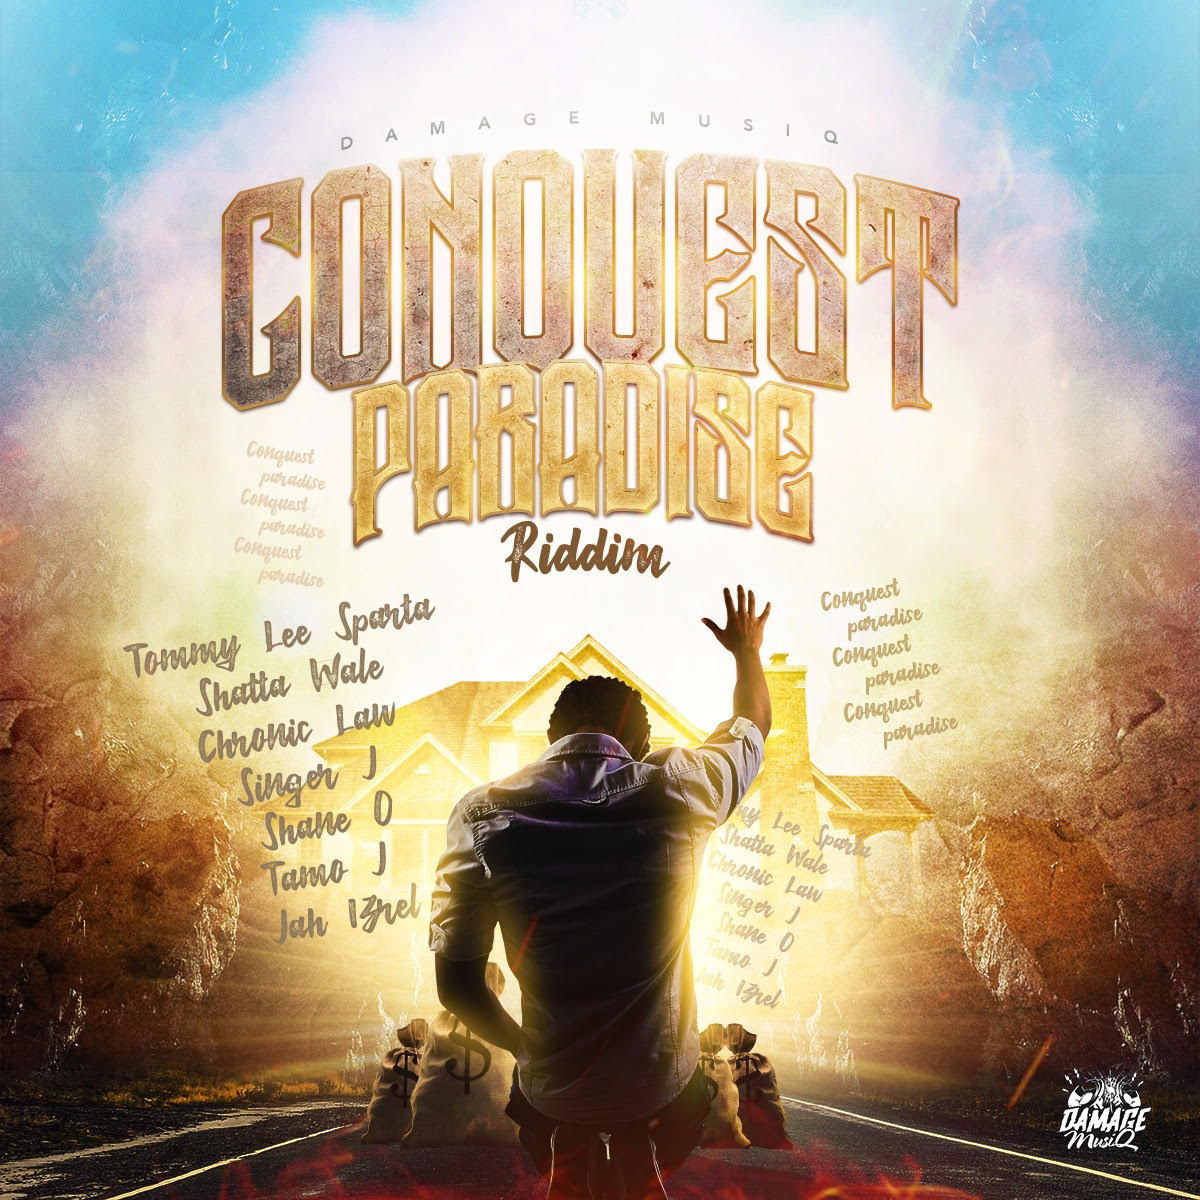 Damage Musiq releases first project of 2019 with 'Conquest Paradise' Riddim